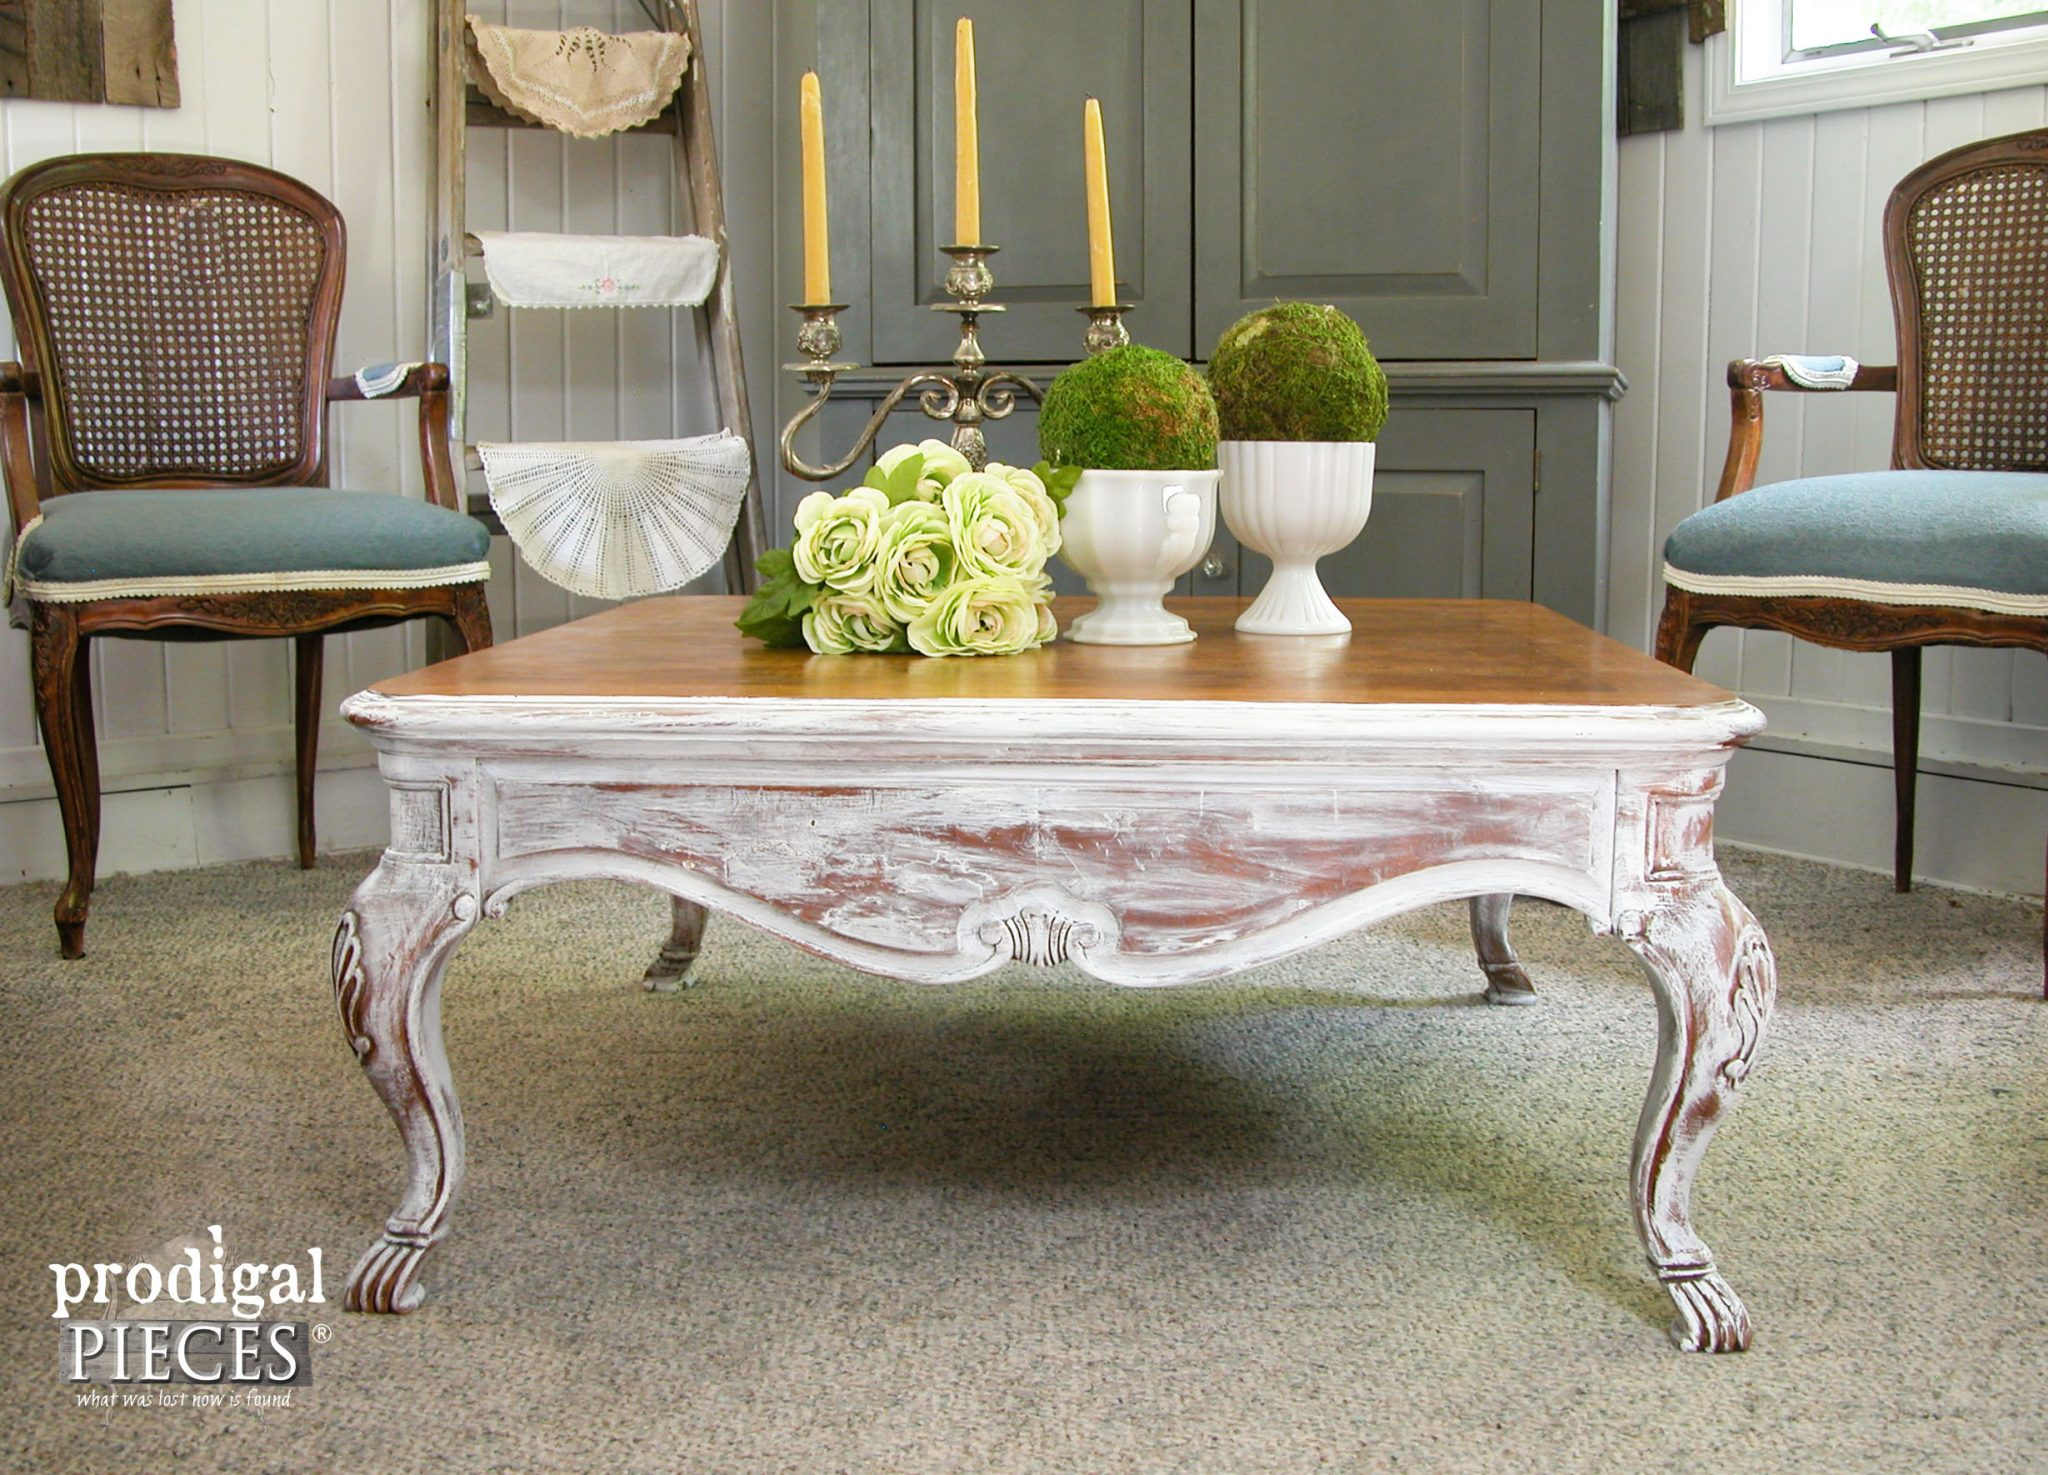 Vintage French Country Coffee Table Makeover By Prodigal Pieces |  Prodigalpieces.com